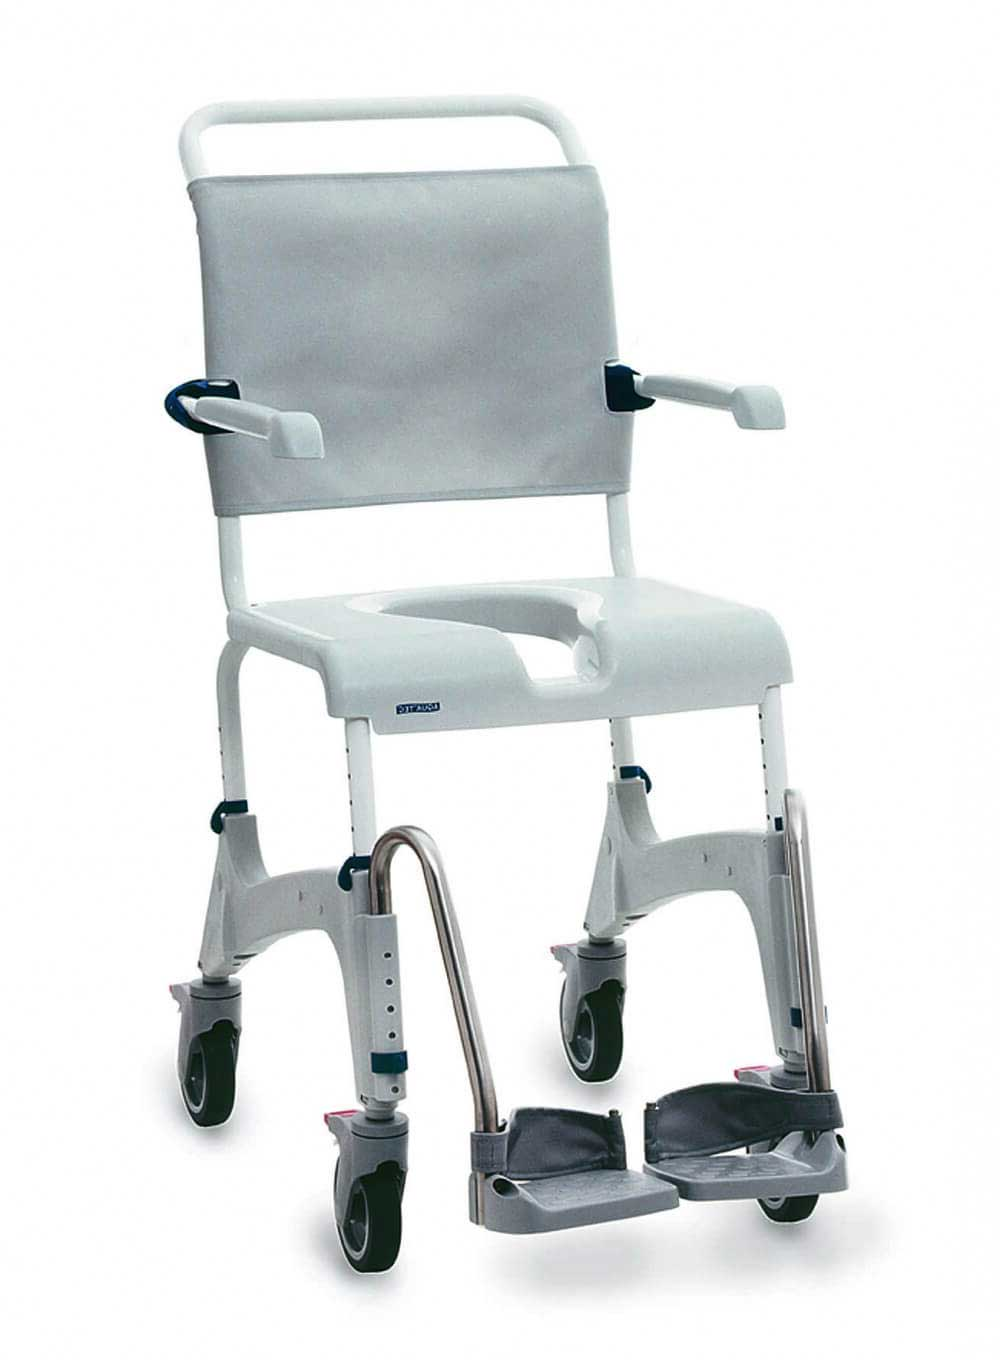 Adjustable Height Showerchair Commode for hire or sale